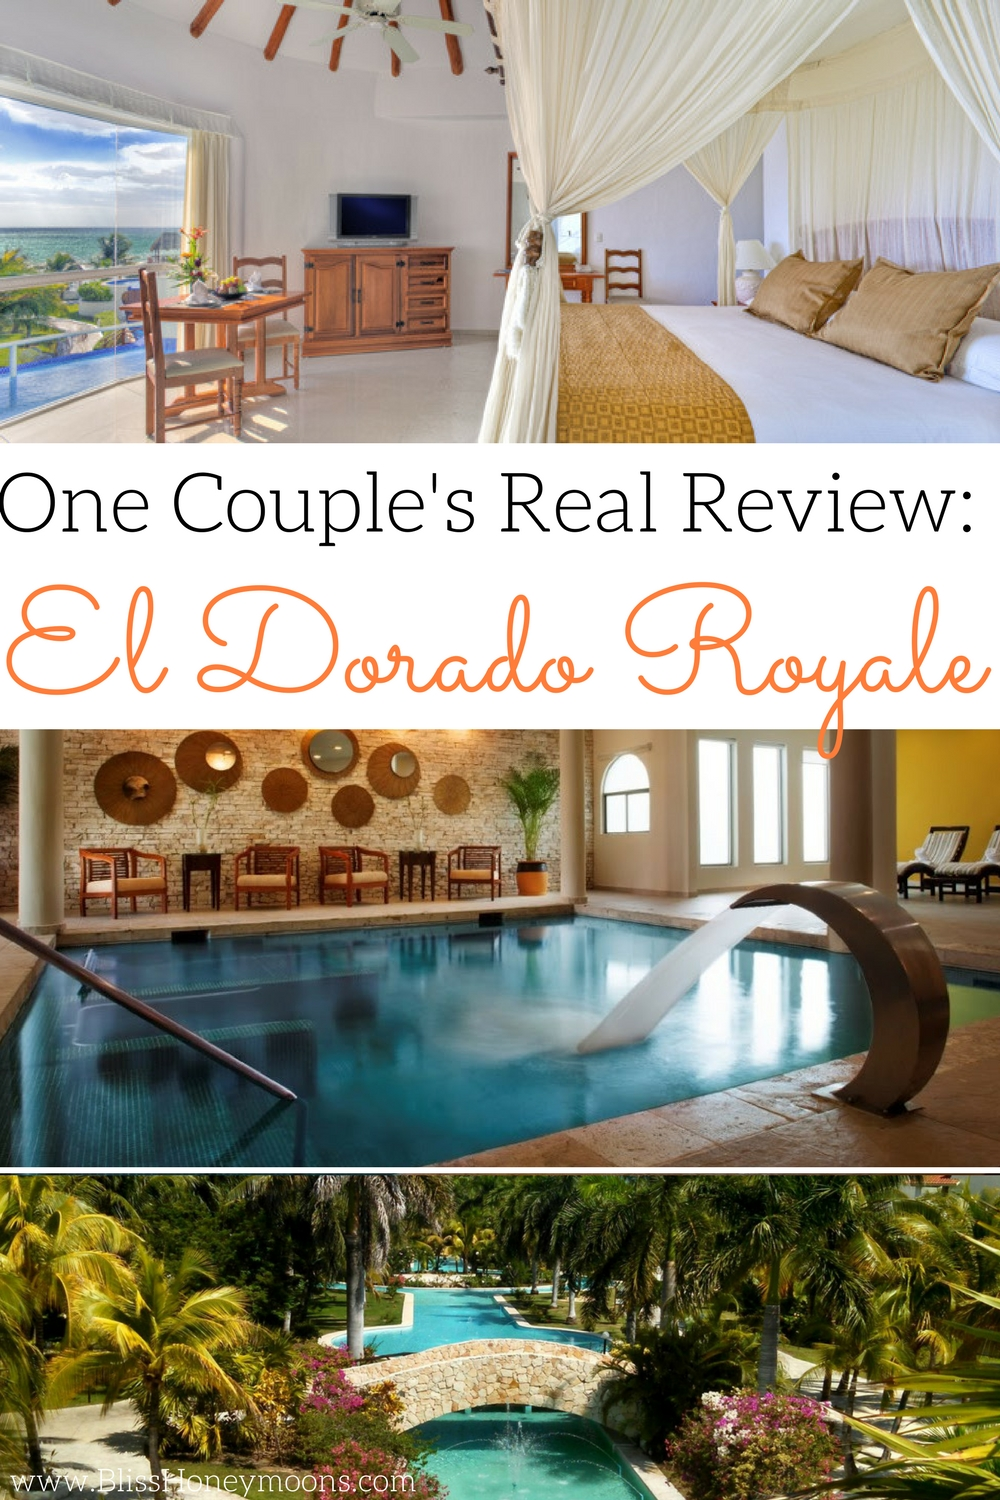 Real review El Dorado Royale, D'Italia Casitas review, best swim up suite, El Dorado Royale Casitas review, best travel agent, Bliss Honeymoons review, best romantic trip